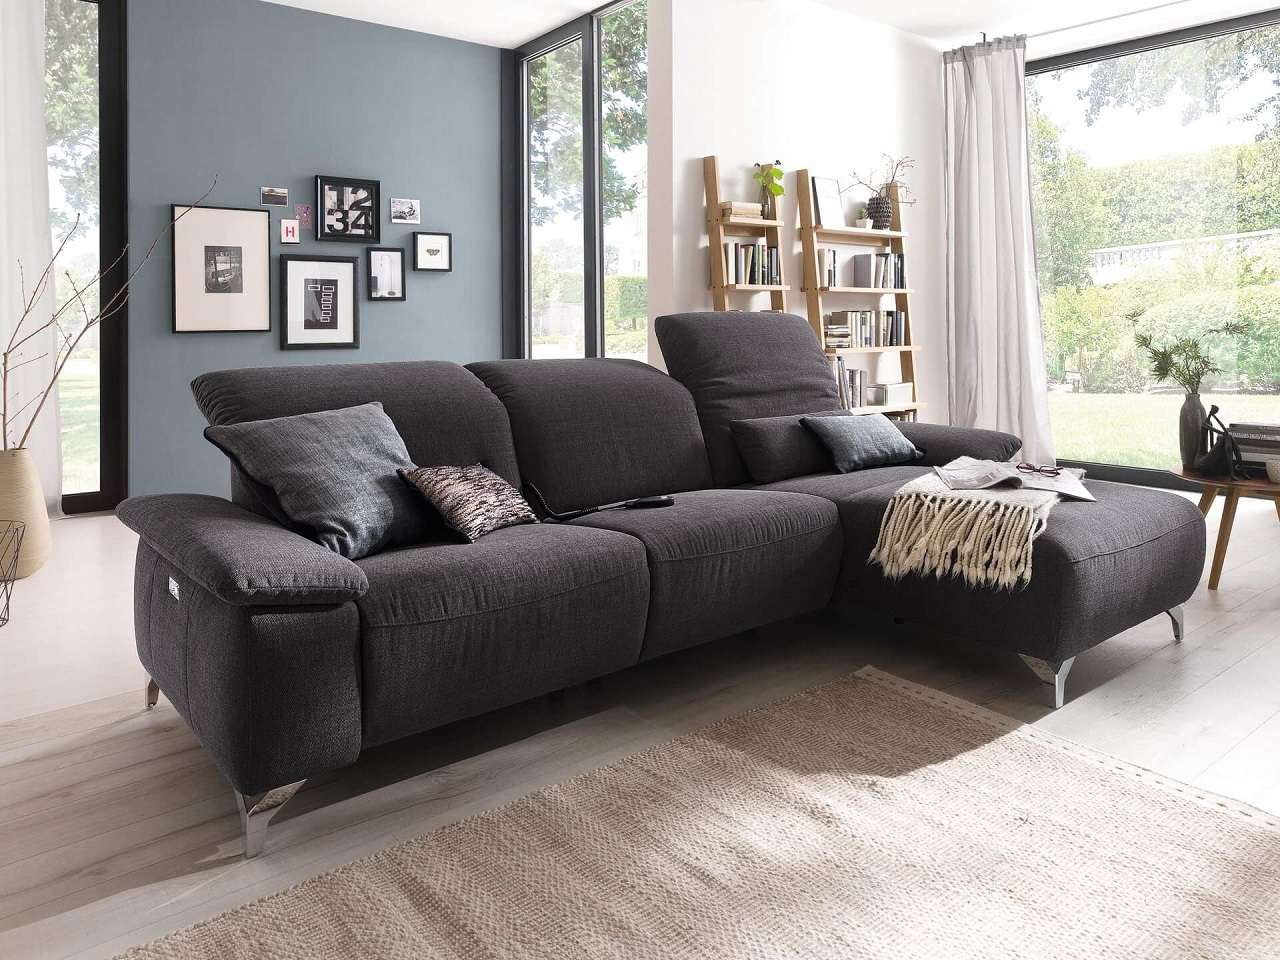 Musterring Mr 370 Sofa Mit Relax Funktion Hämel